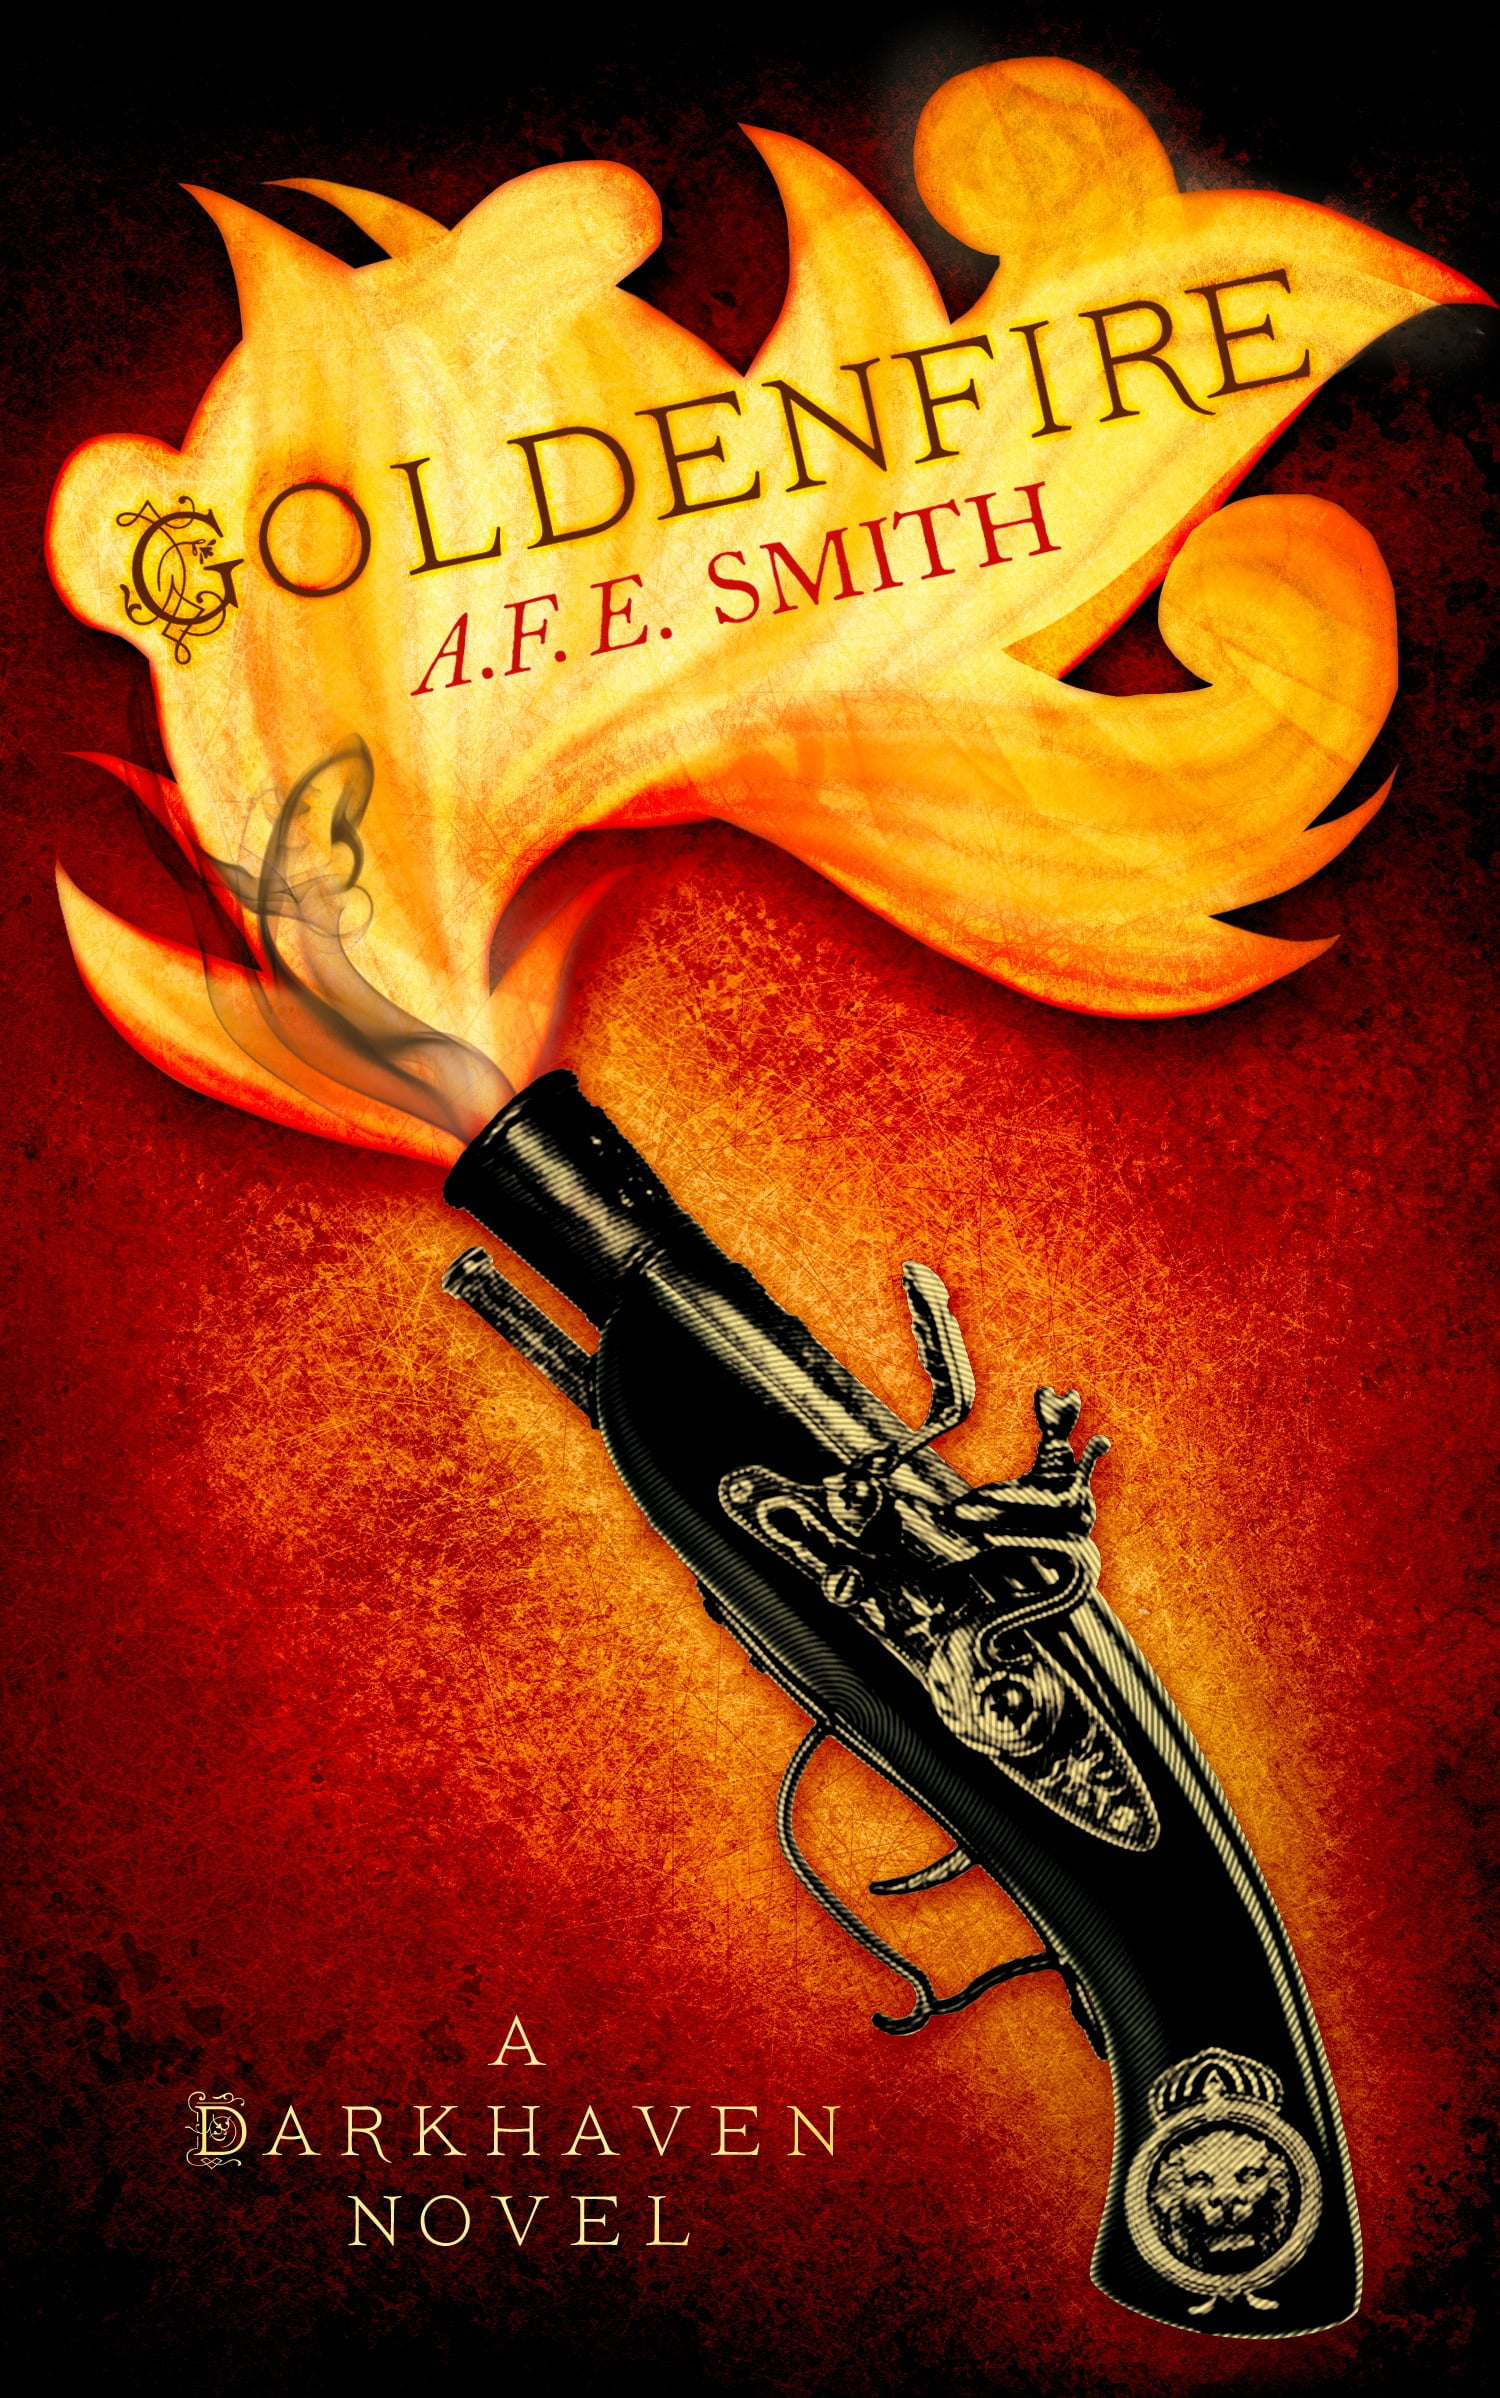 Review of Goldenfire (The Darkhaven Novels, Book 2) by A. F. E. Smith